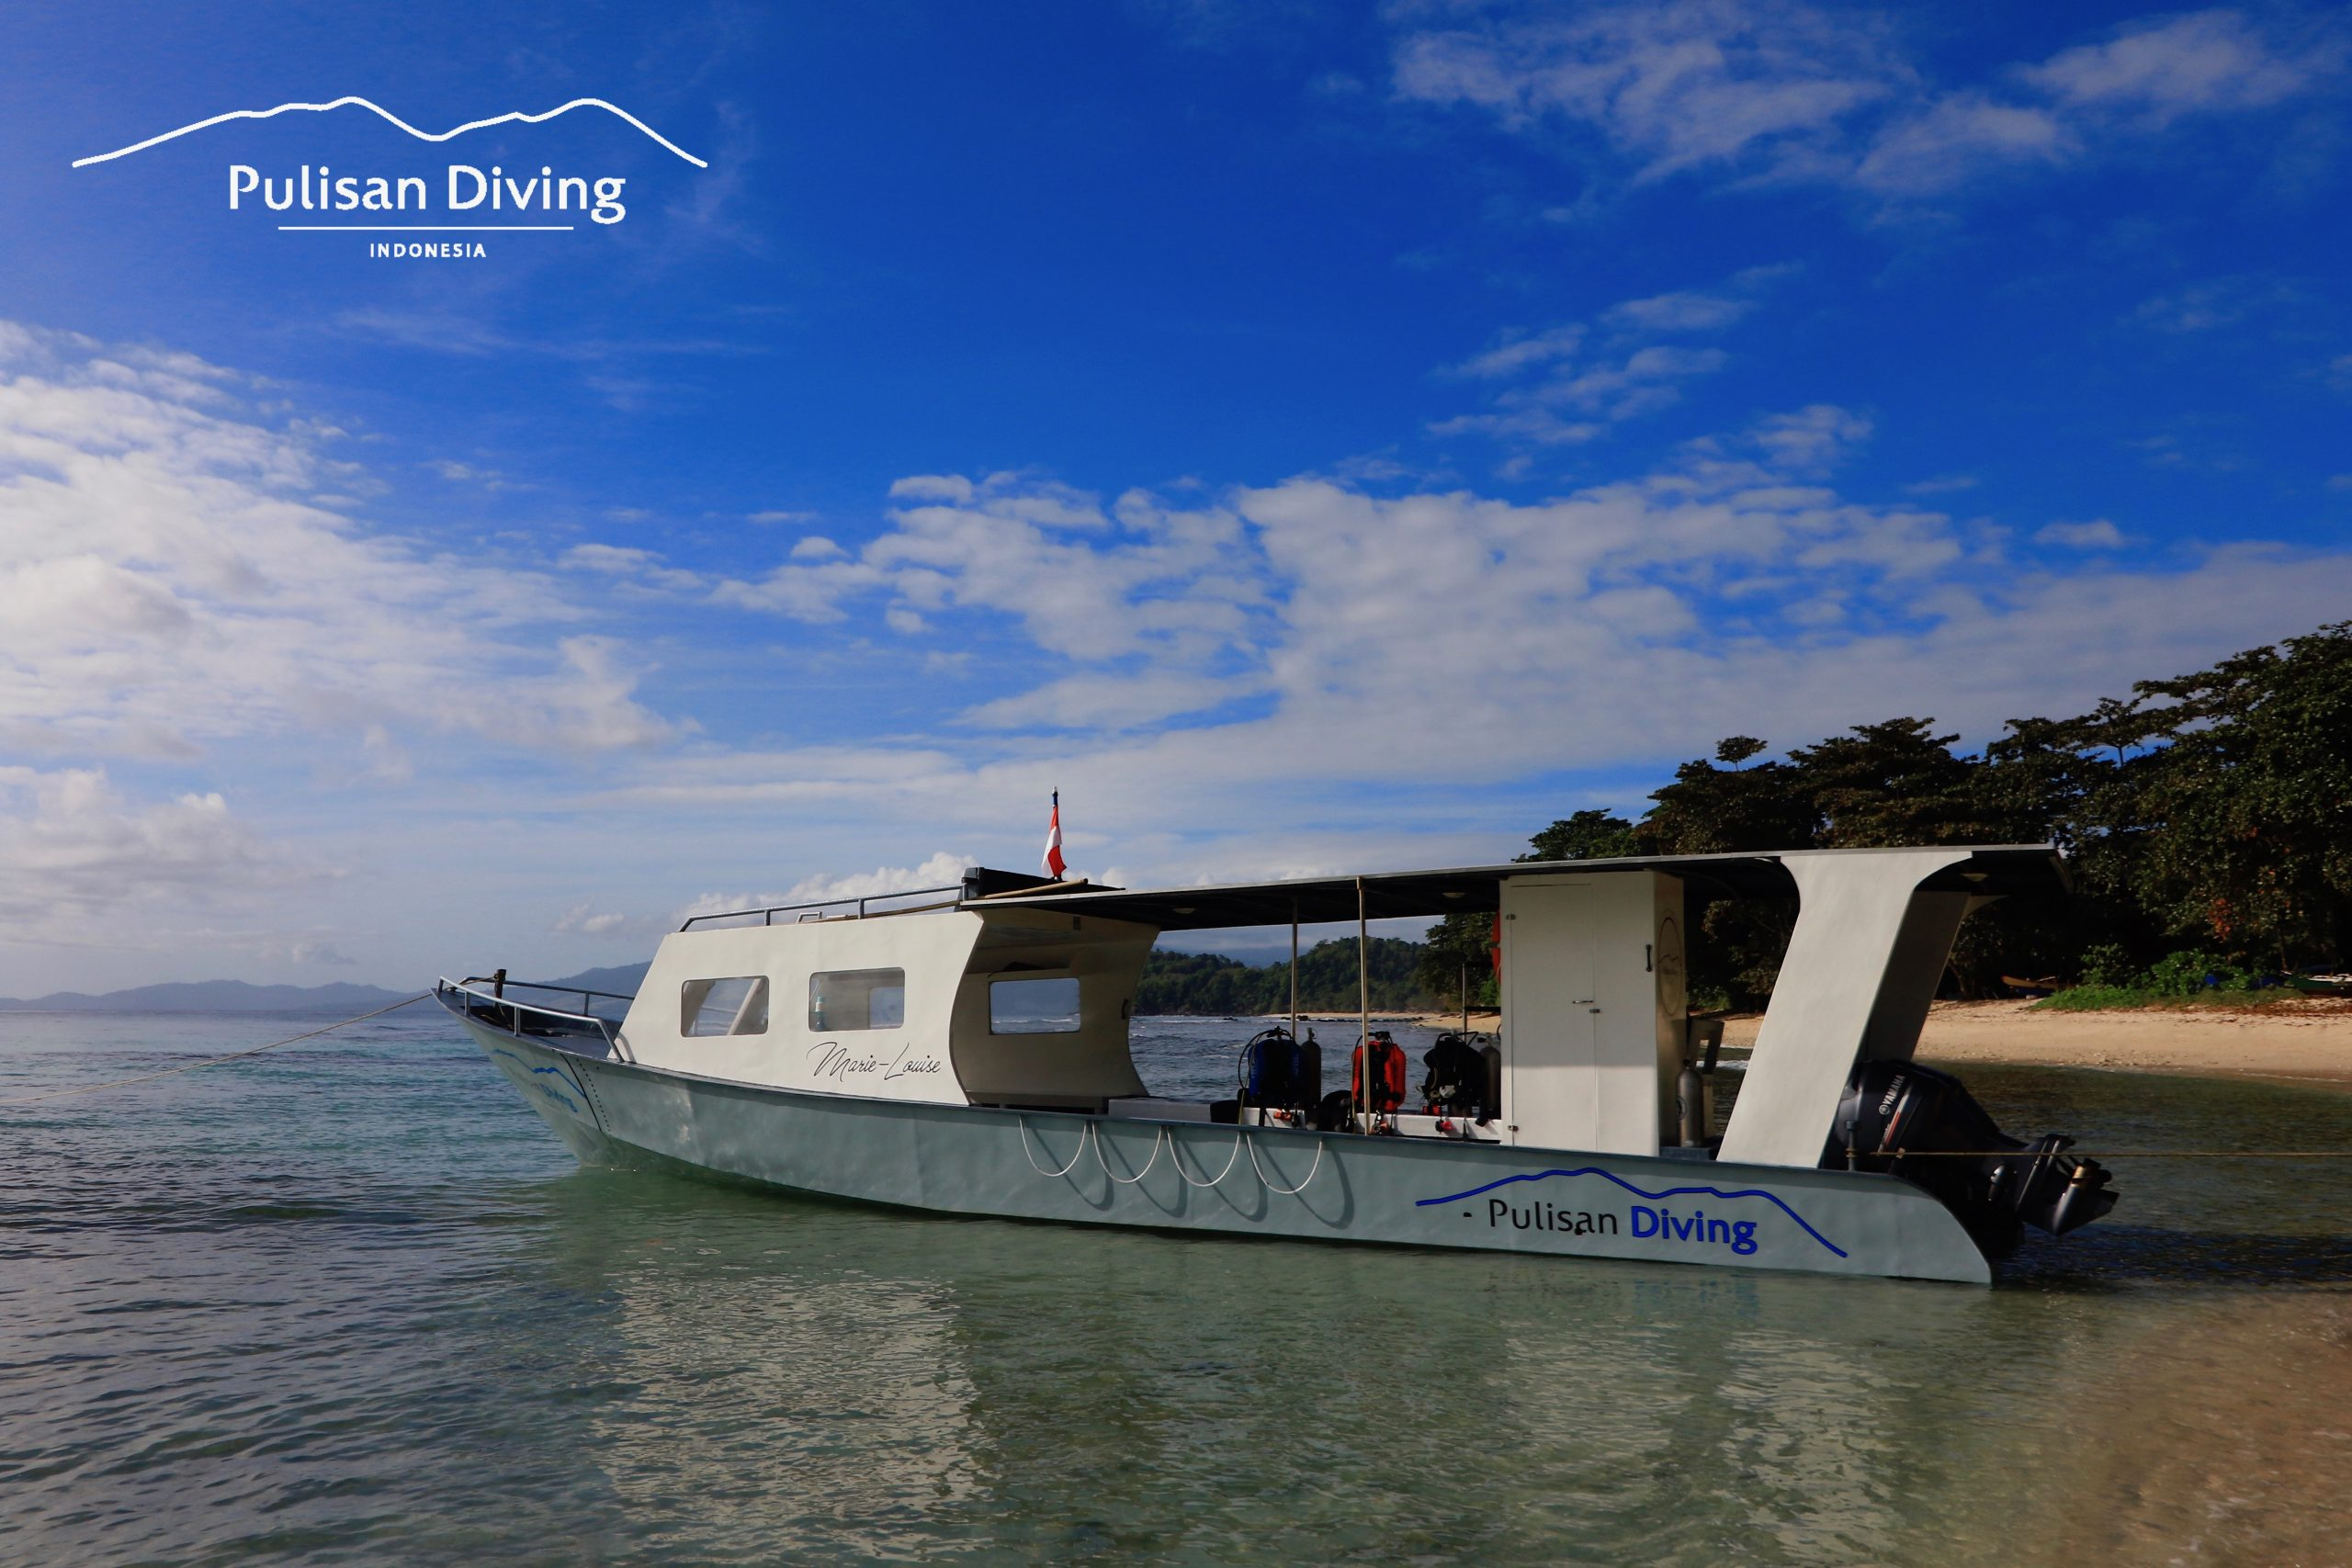 pulisan diving boat indonesia